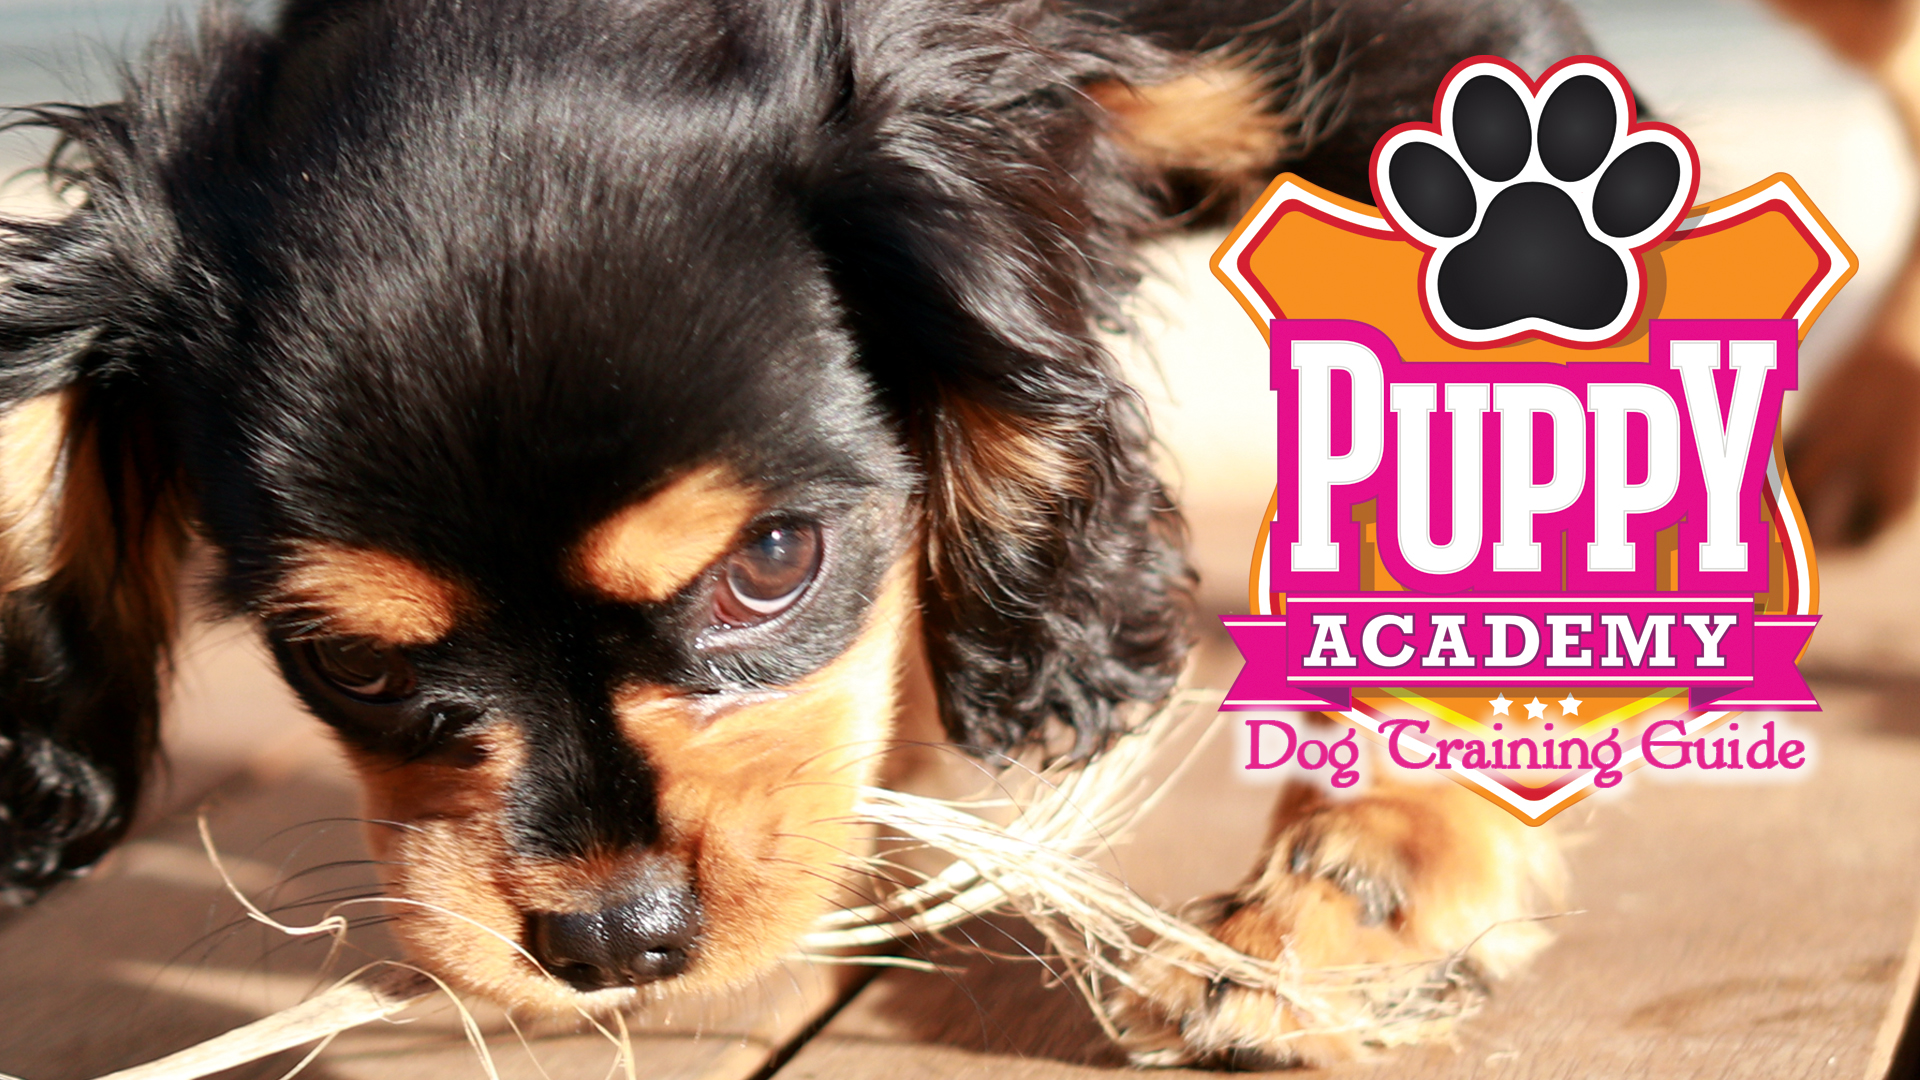 Puppy Academy: Dog Training Guide